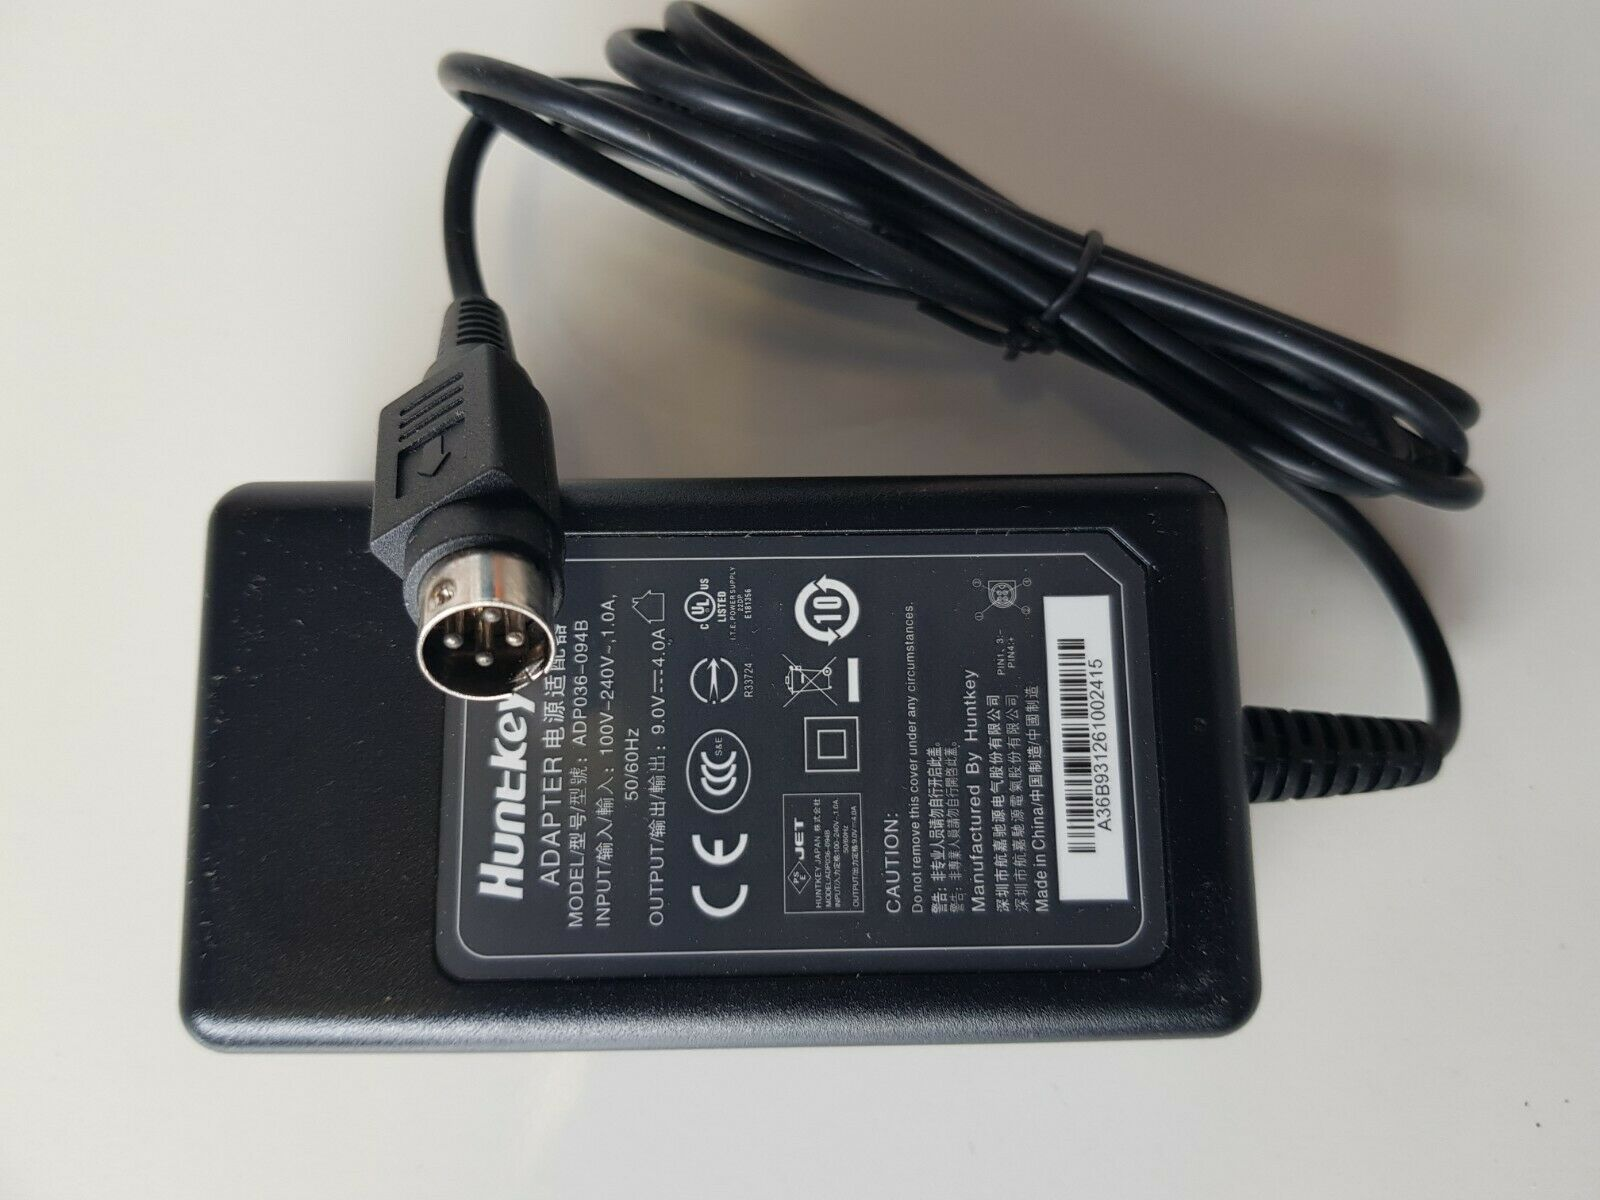 100 Brand New 9v 4a 4 Pin Huntkey Adp036 094b Ac Adapter Power Supply Power Supply Led Power Supply Cctv Security Cameras